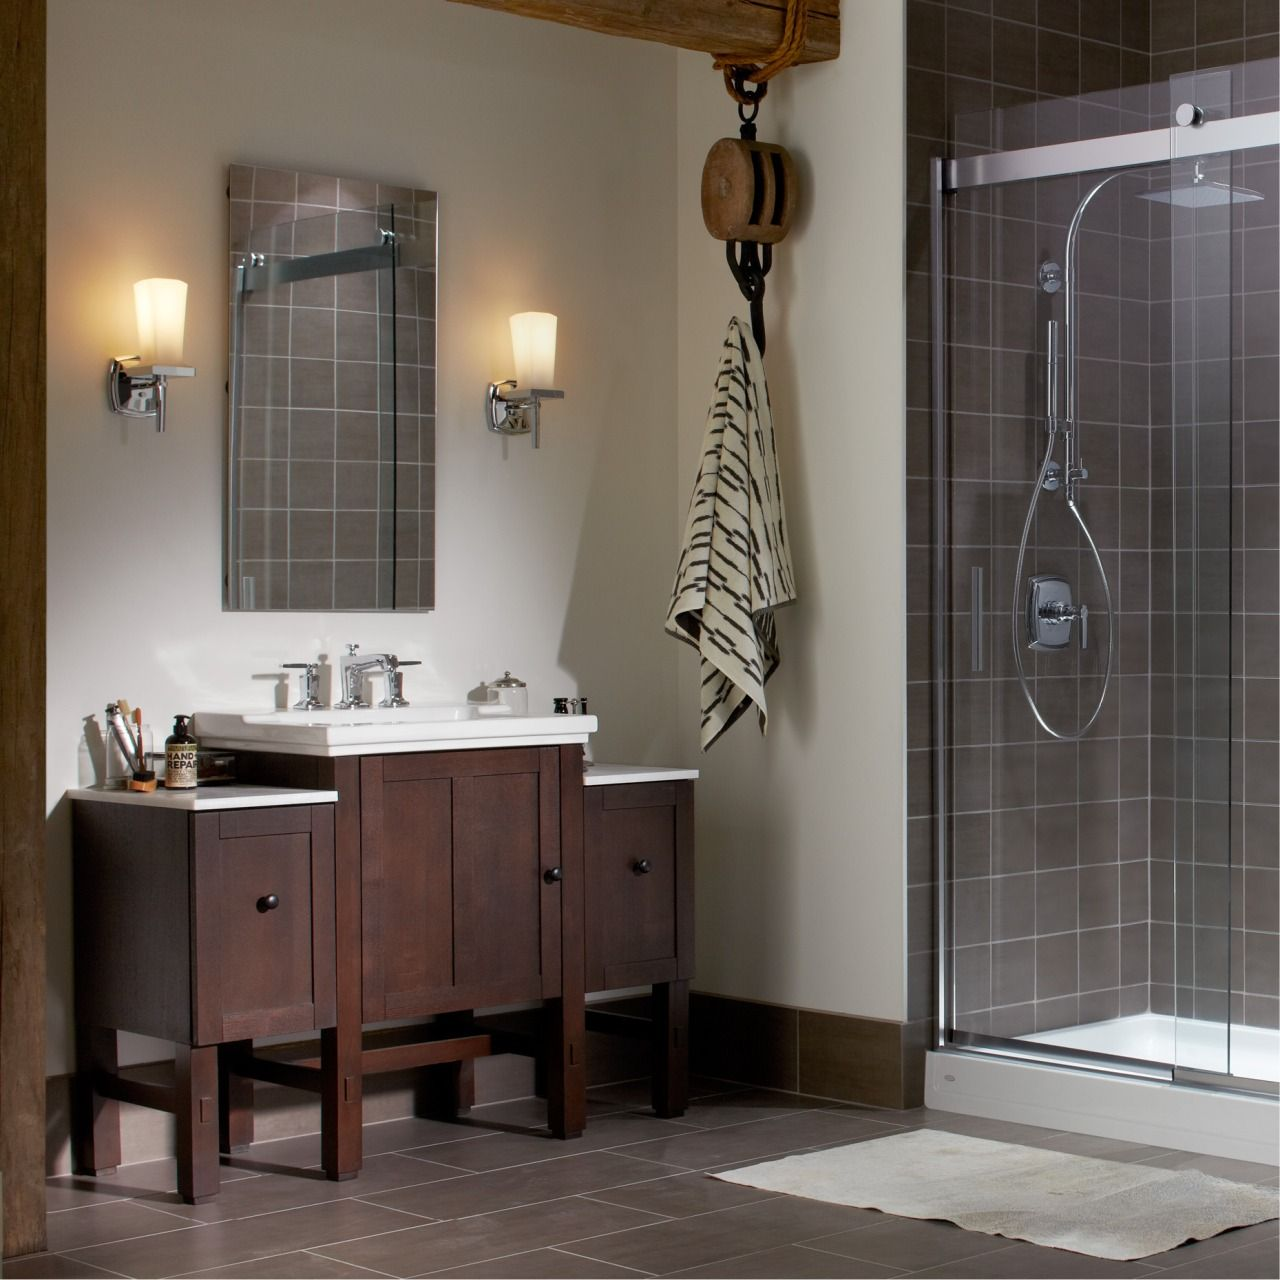 Bathroom Remodel Ideas Kohler bold ideas from kohler | bathroom remodel | pinterest | 24 vanity